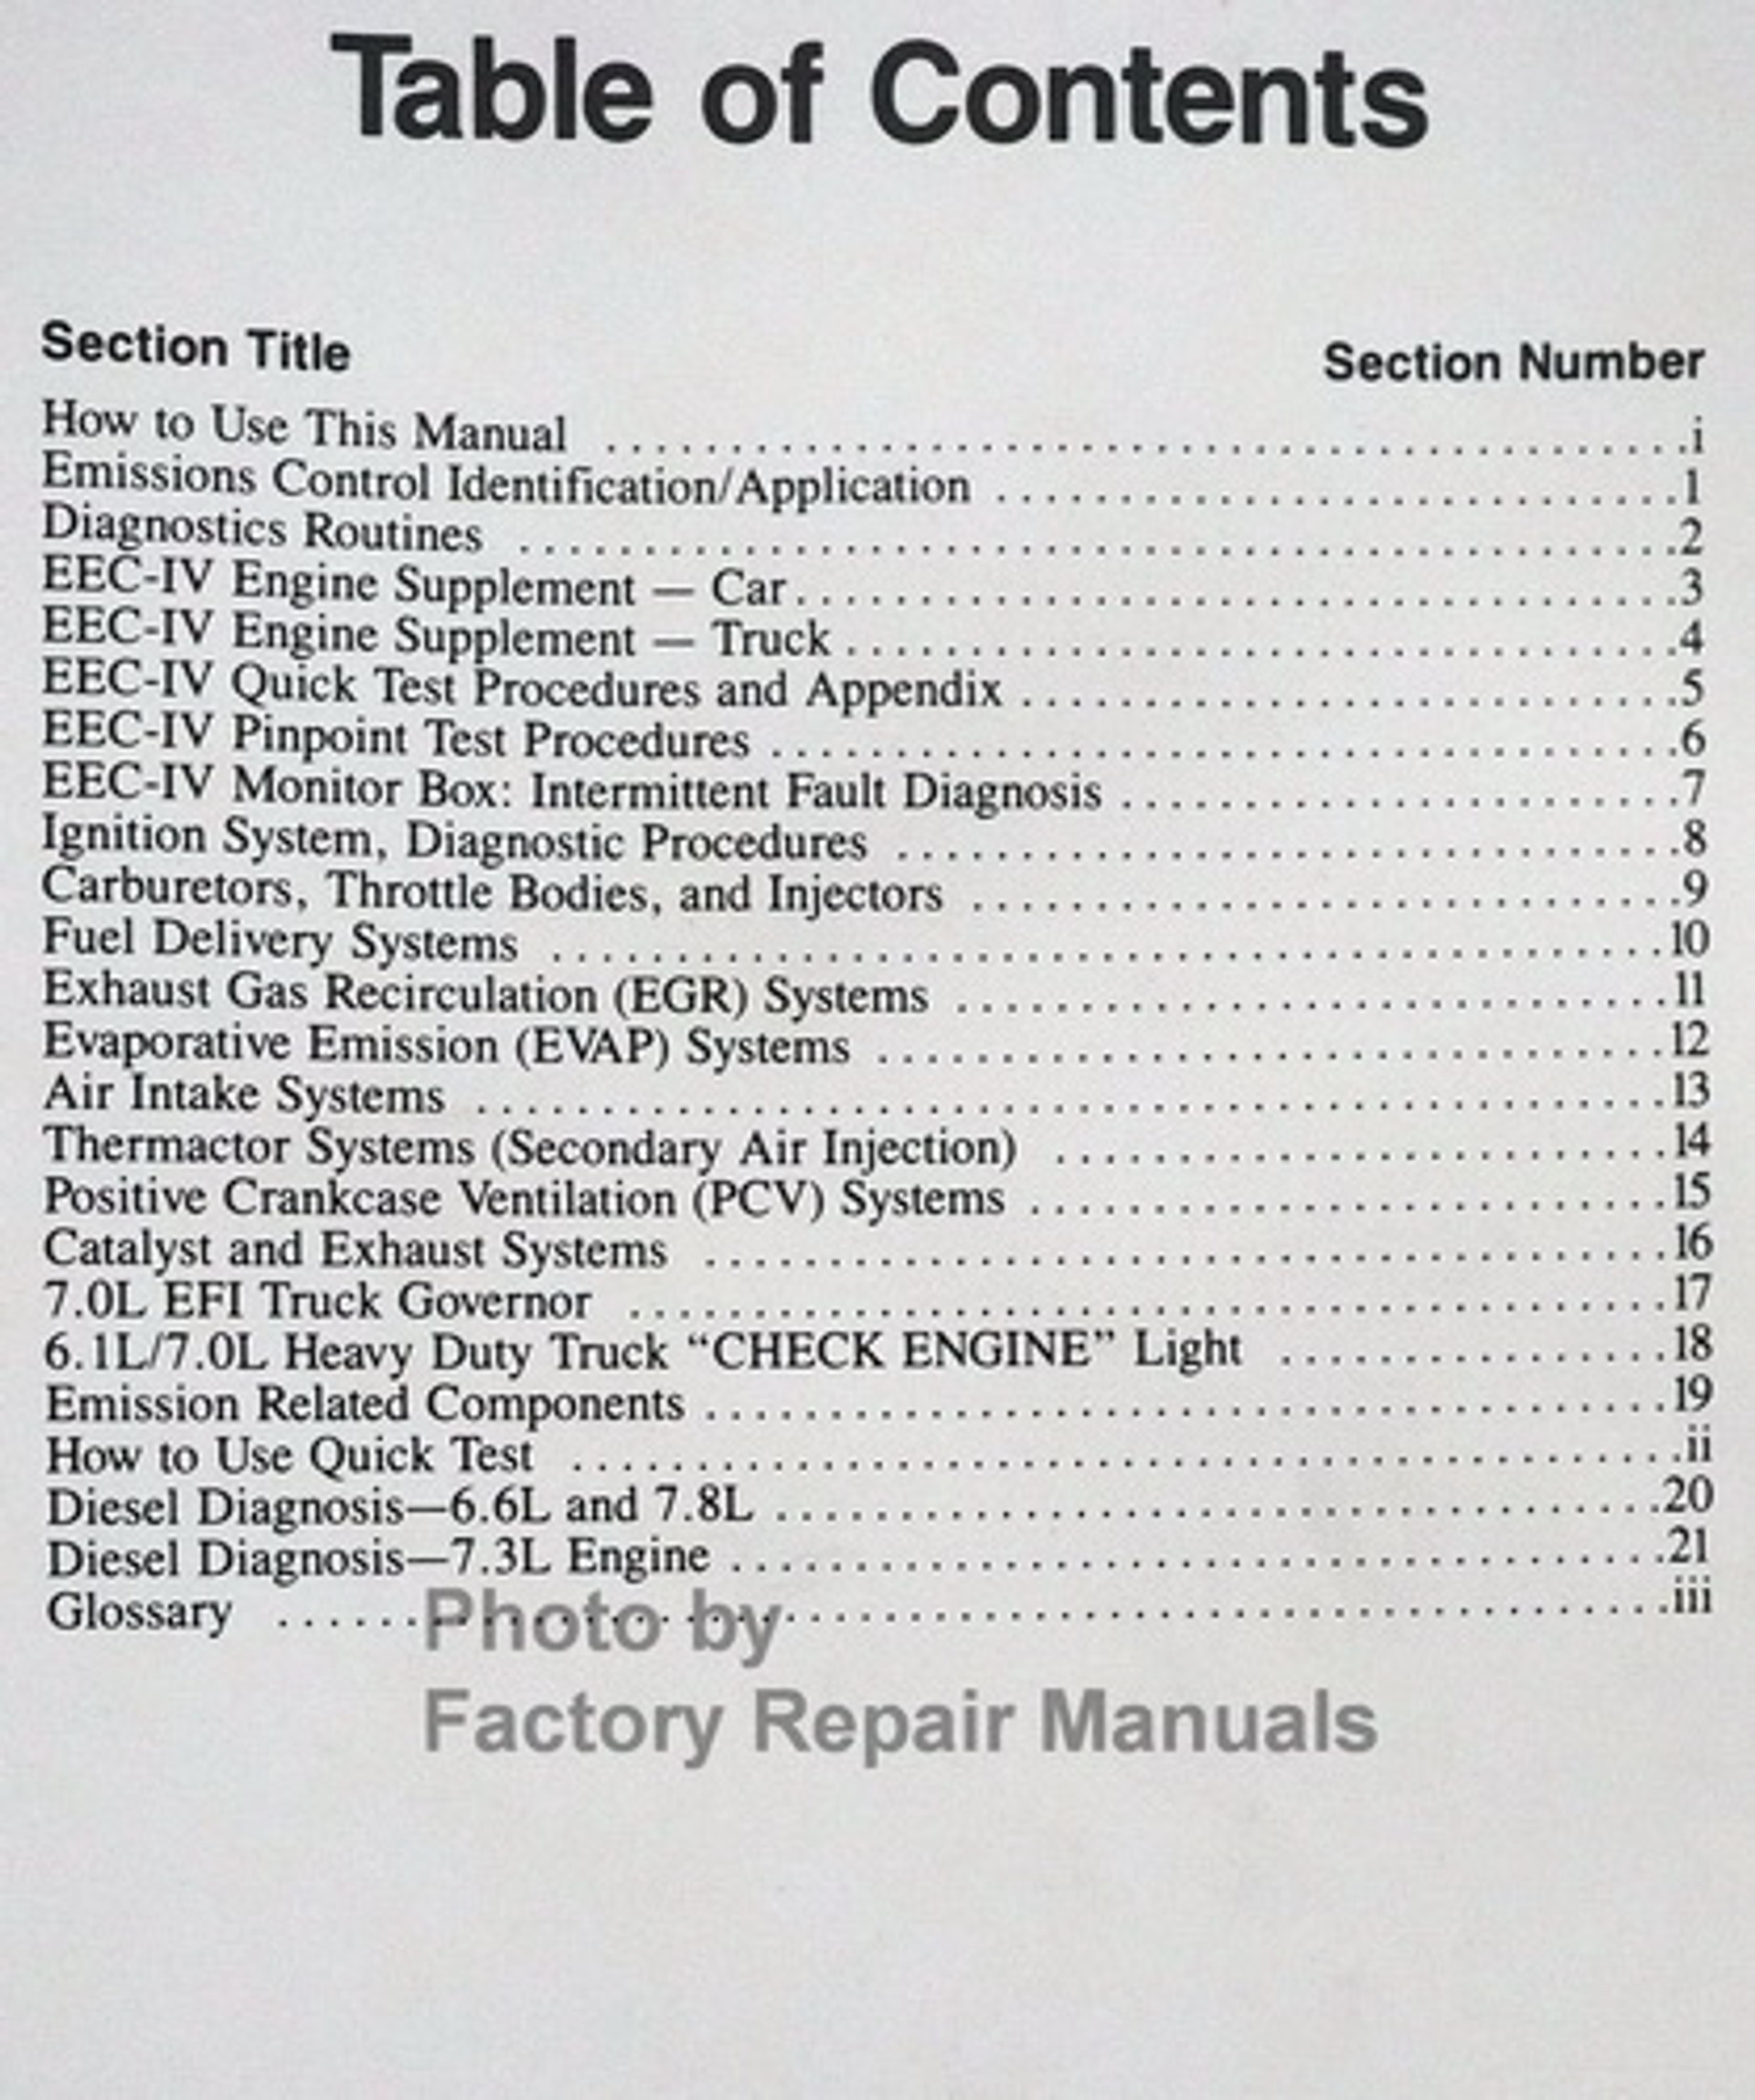 1991 Ford Lincoln Mercury Car & Truck Engine and Emissions